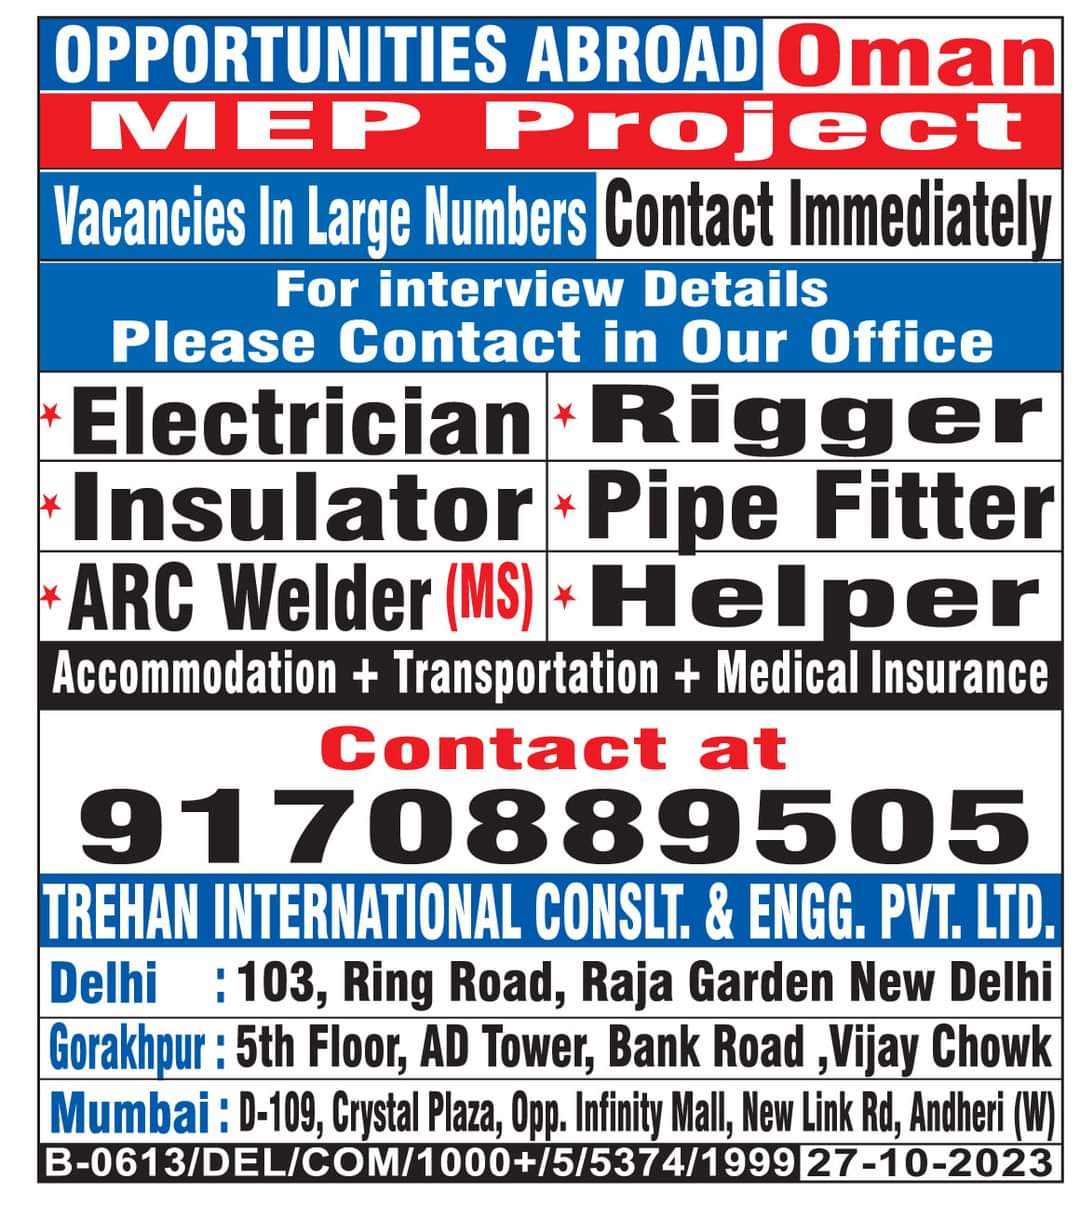 MEP PROJECT-OMAN